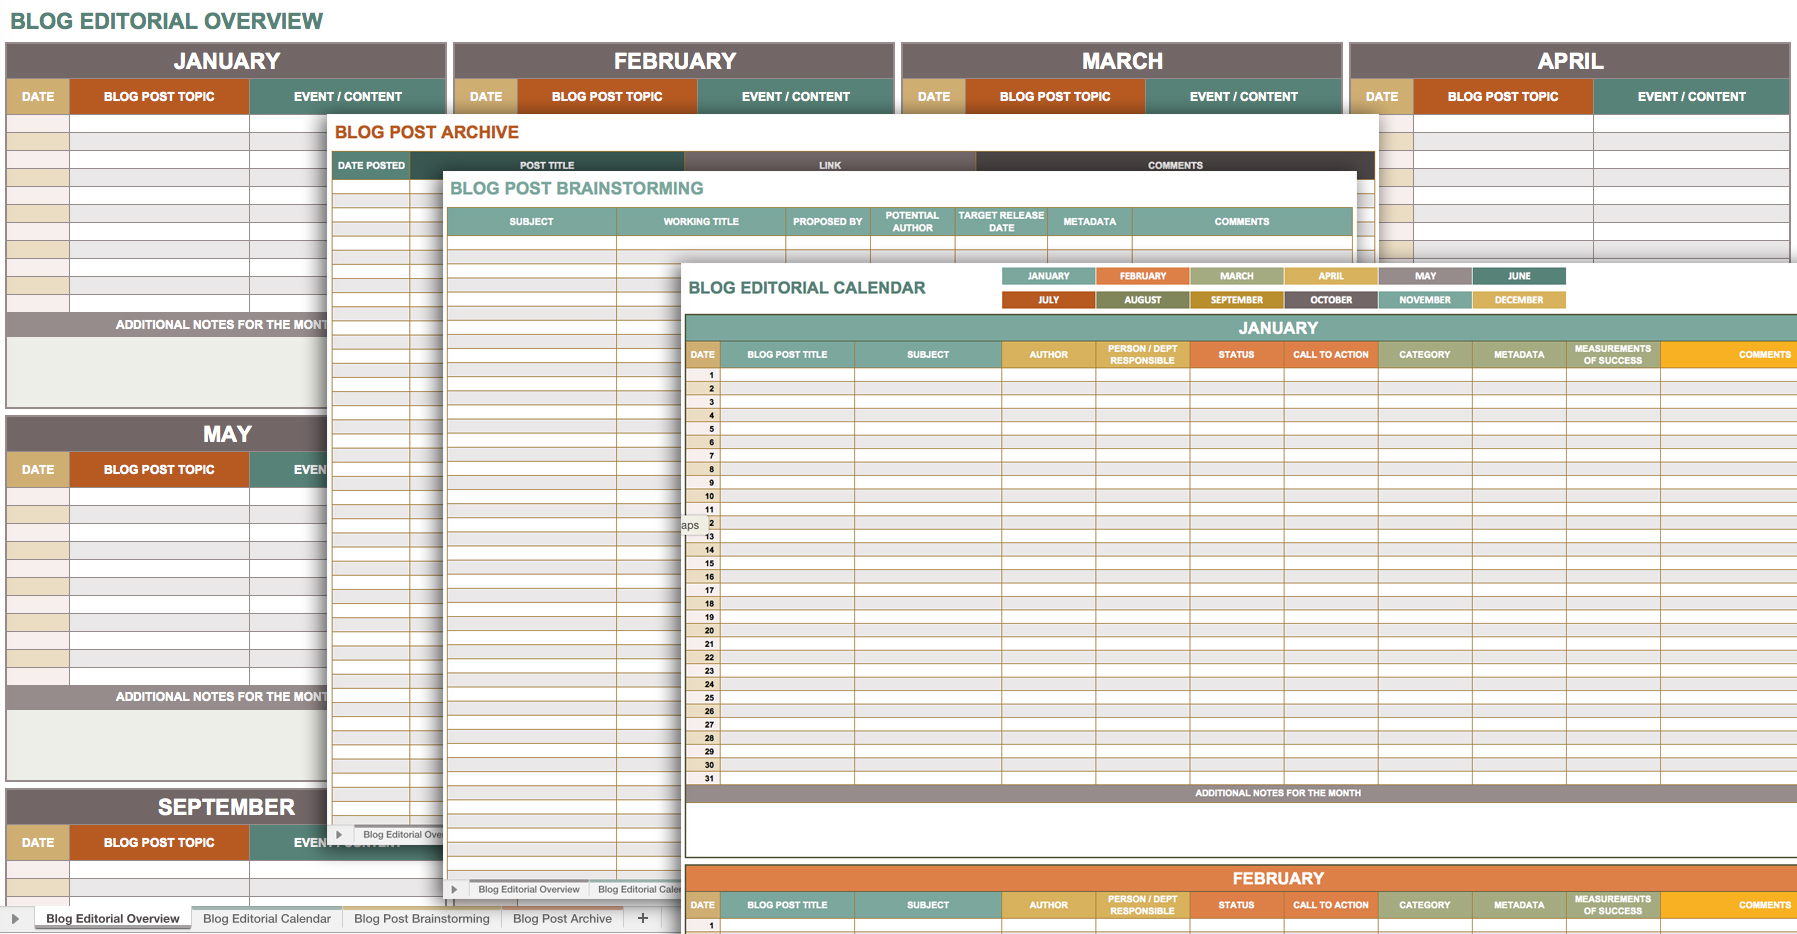 How To Compare Two Spreadsheets In Excel For Differences